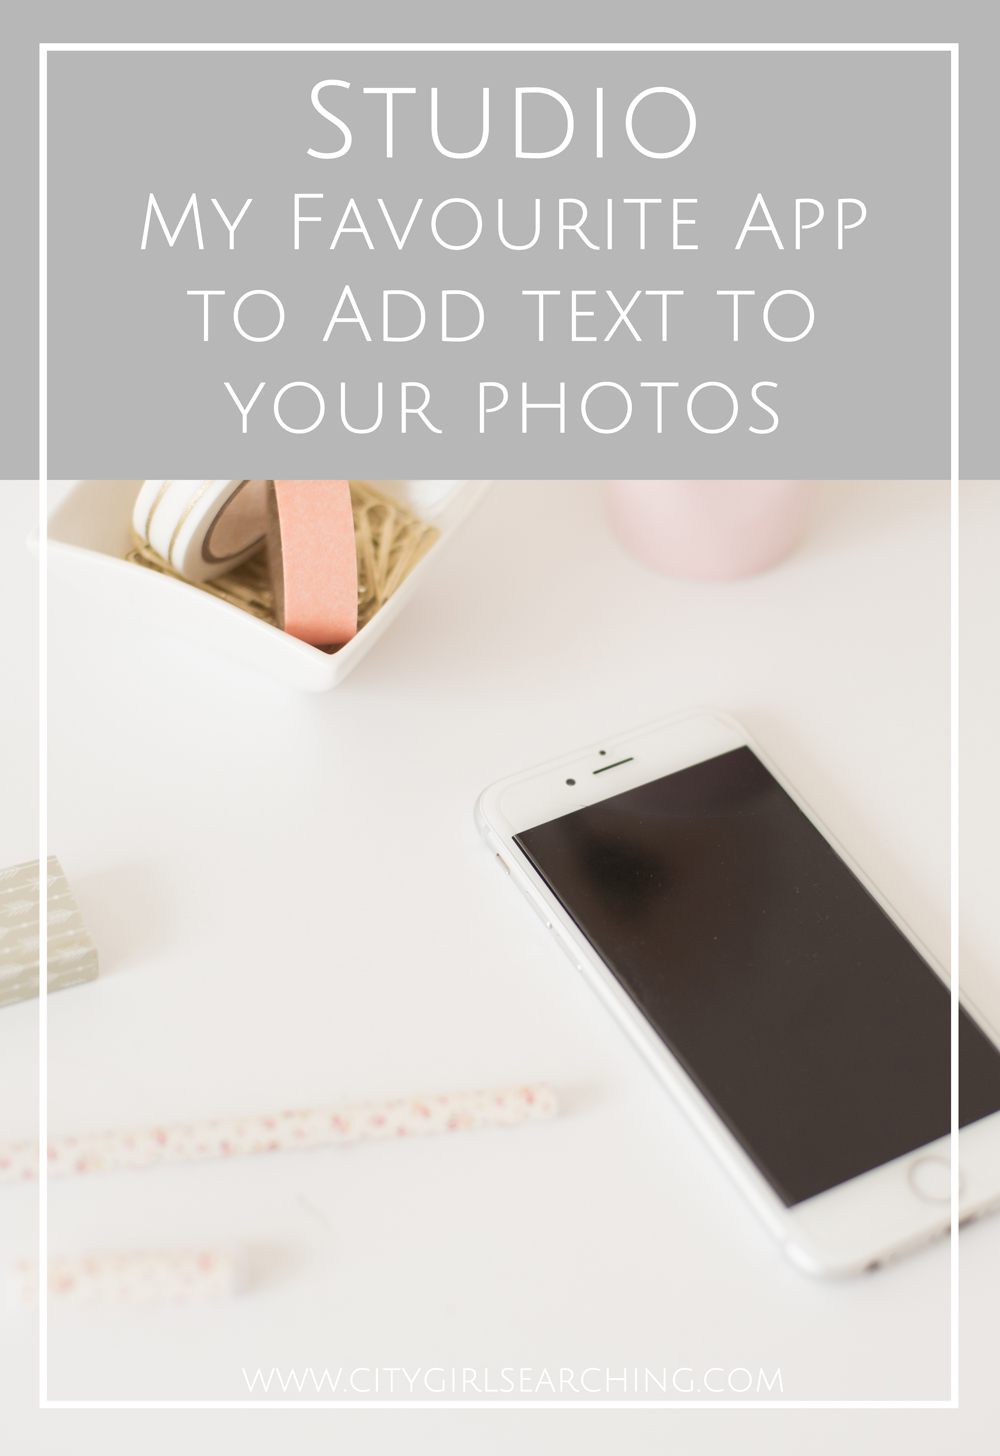 Studio Favourite App to Add Text To Photos